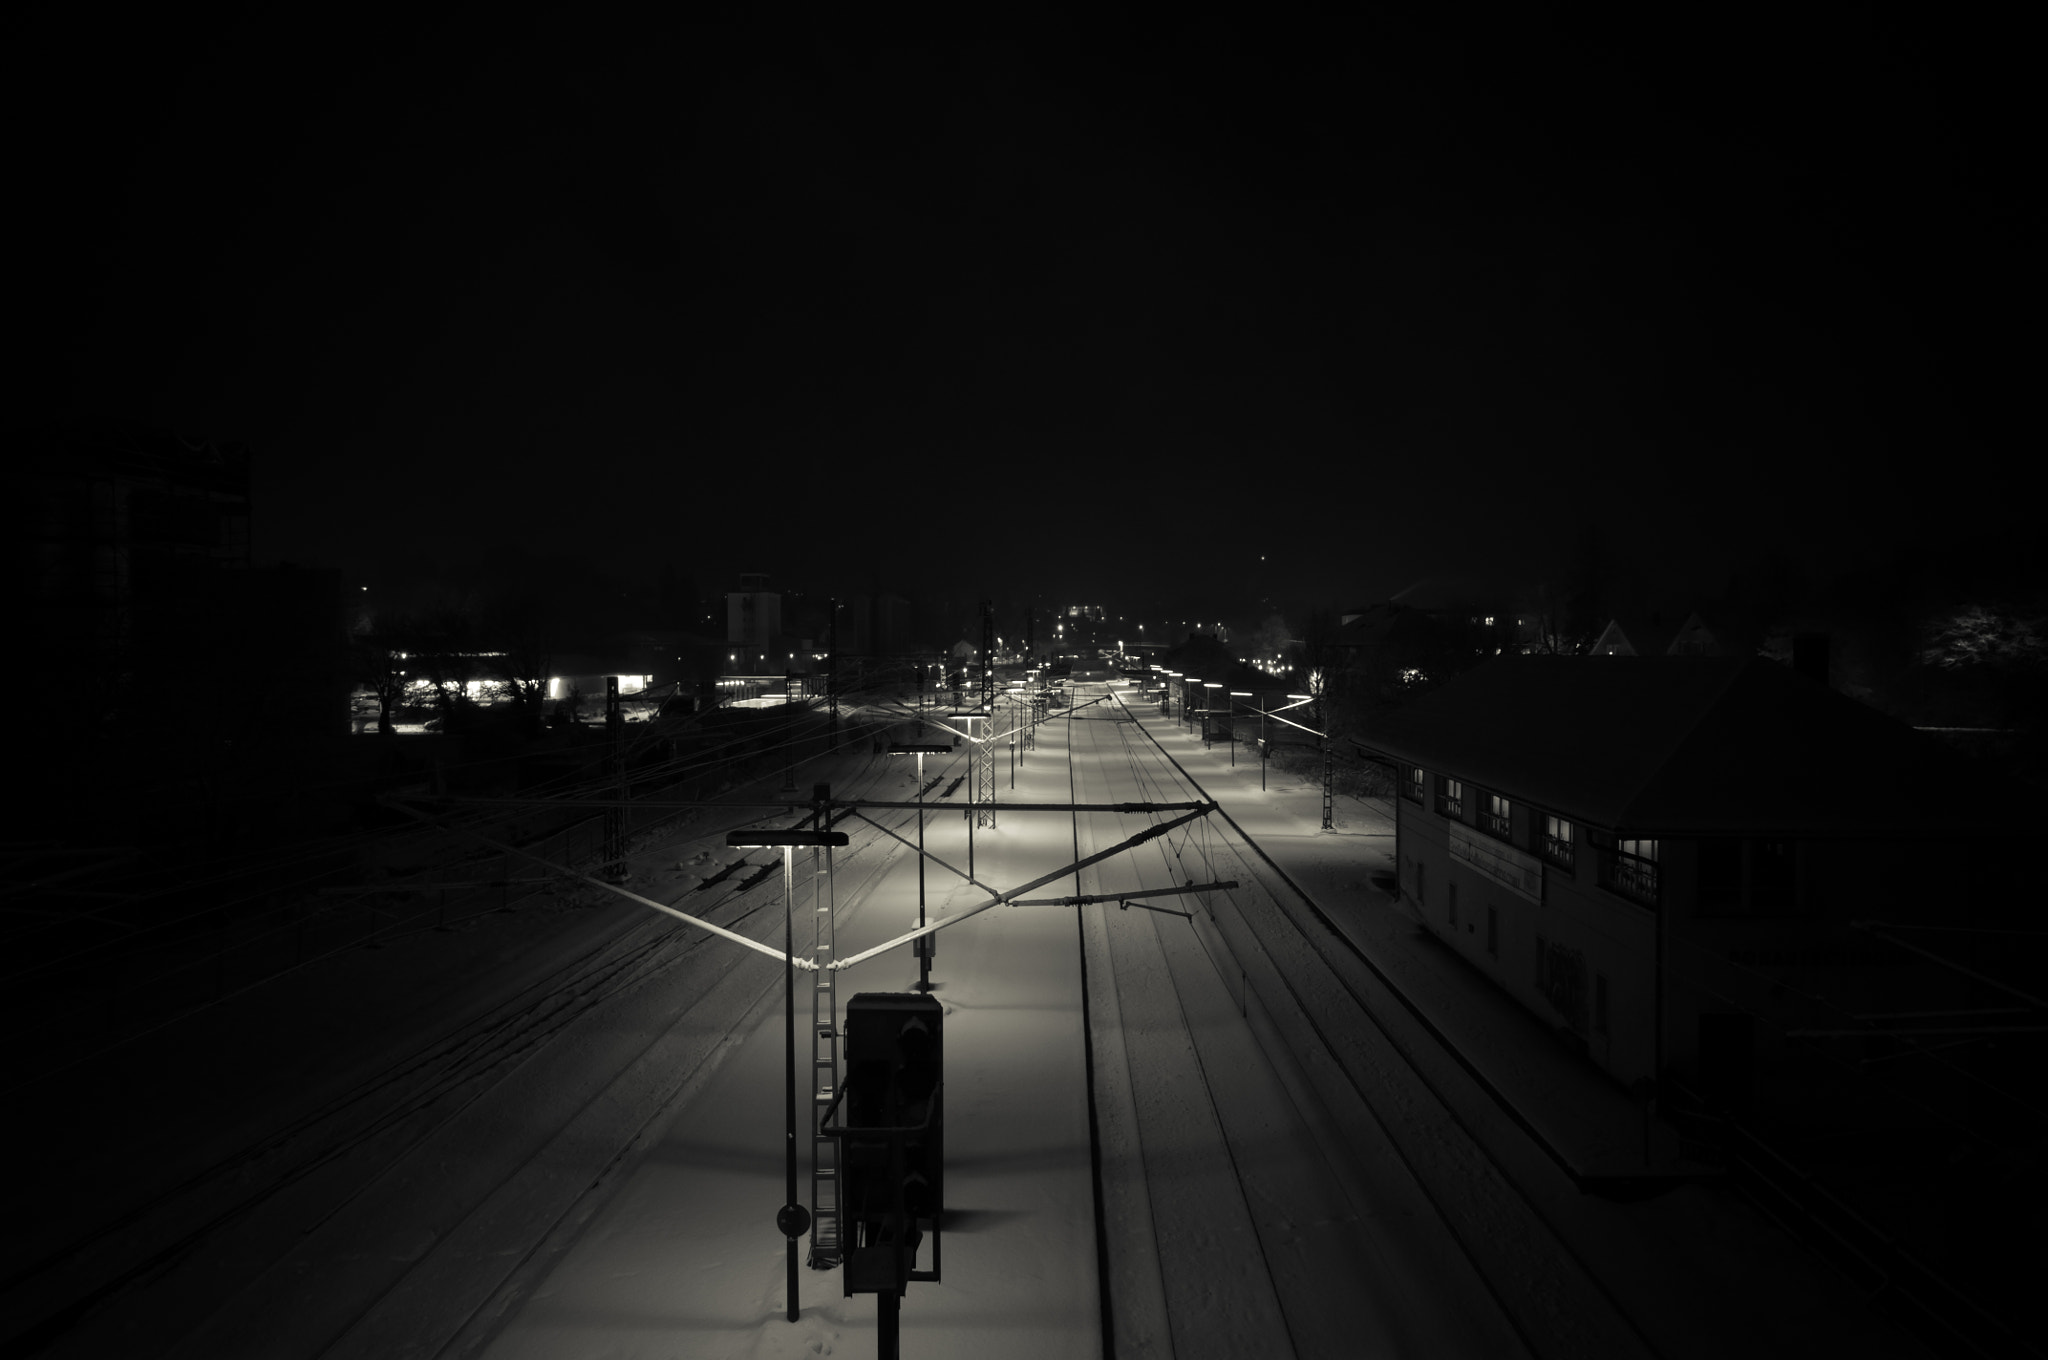 Photograph Train station in winter by Nils Zajac on 500px